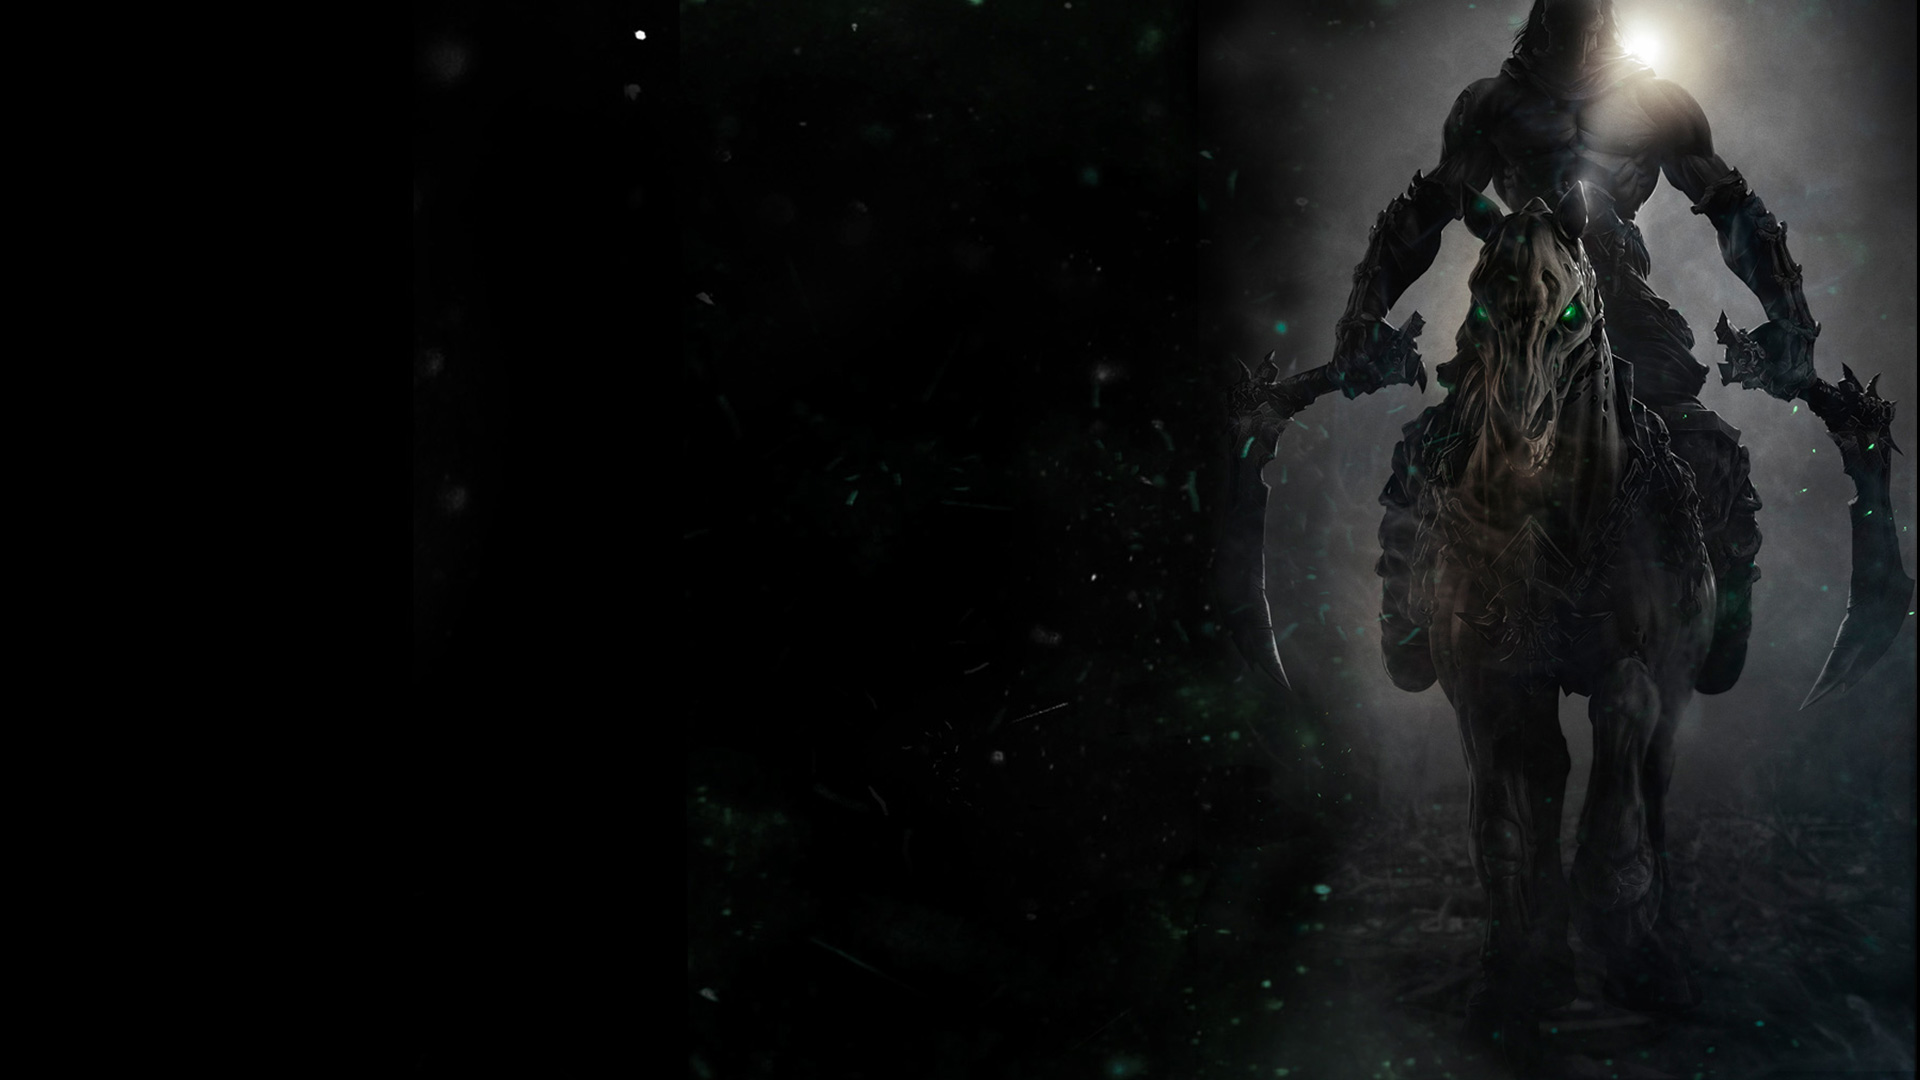 Darksiders II Wallpaper in 1920x1080 1920x1080